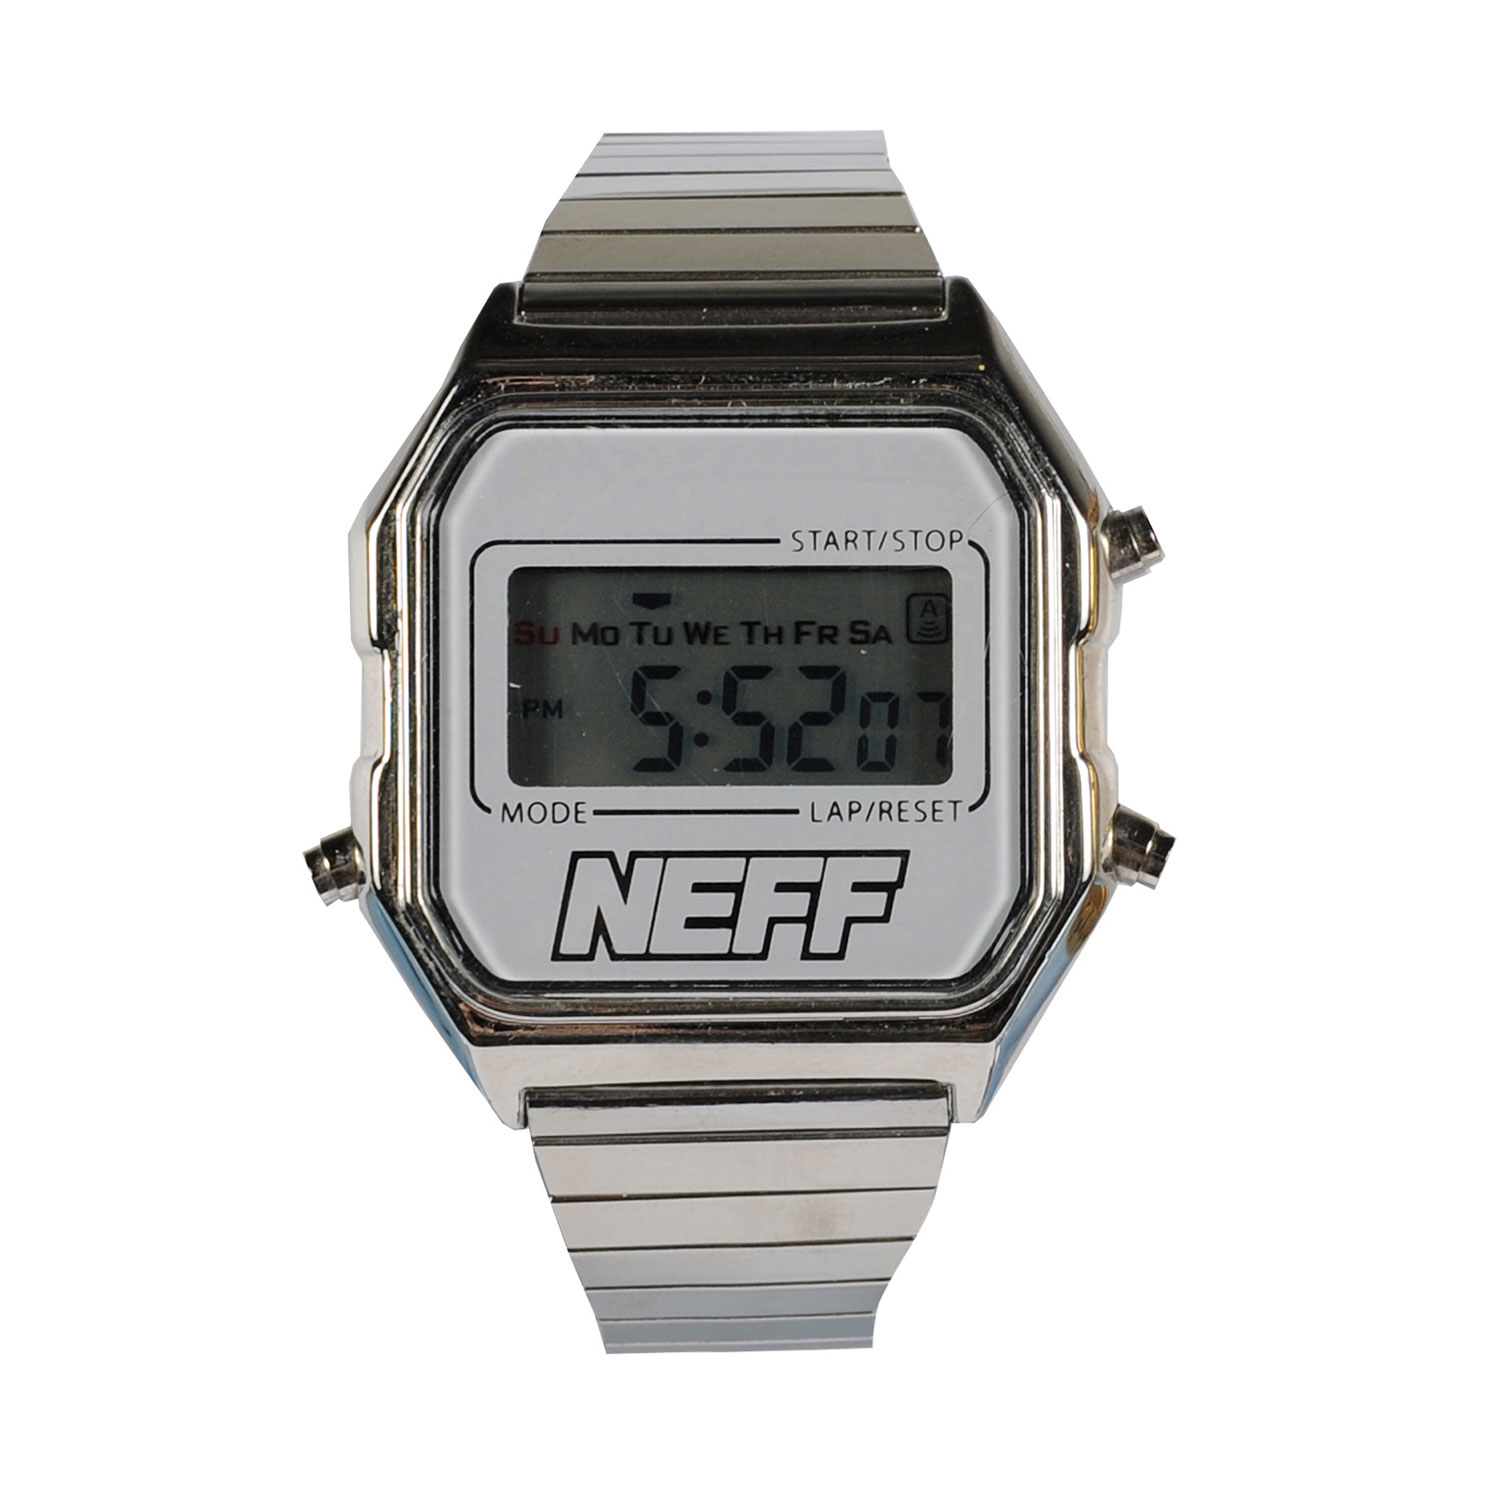 Skateboard Neff Lux Watch Silver - $20.95